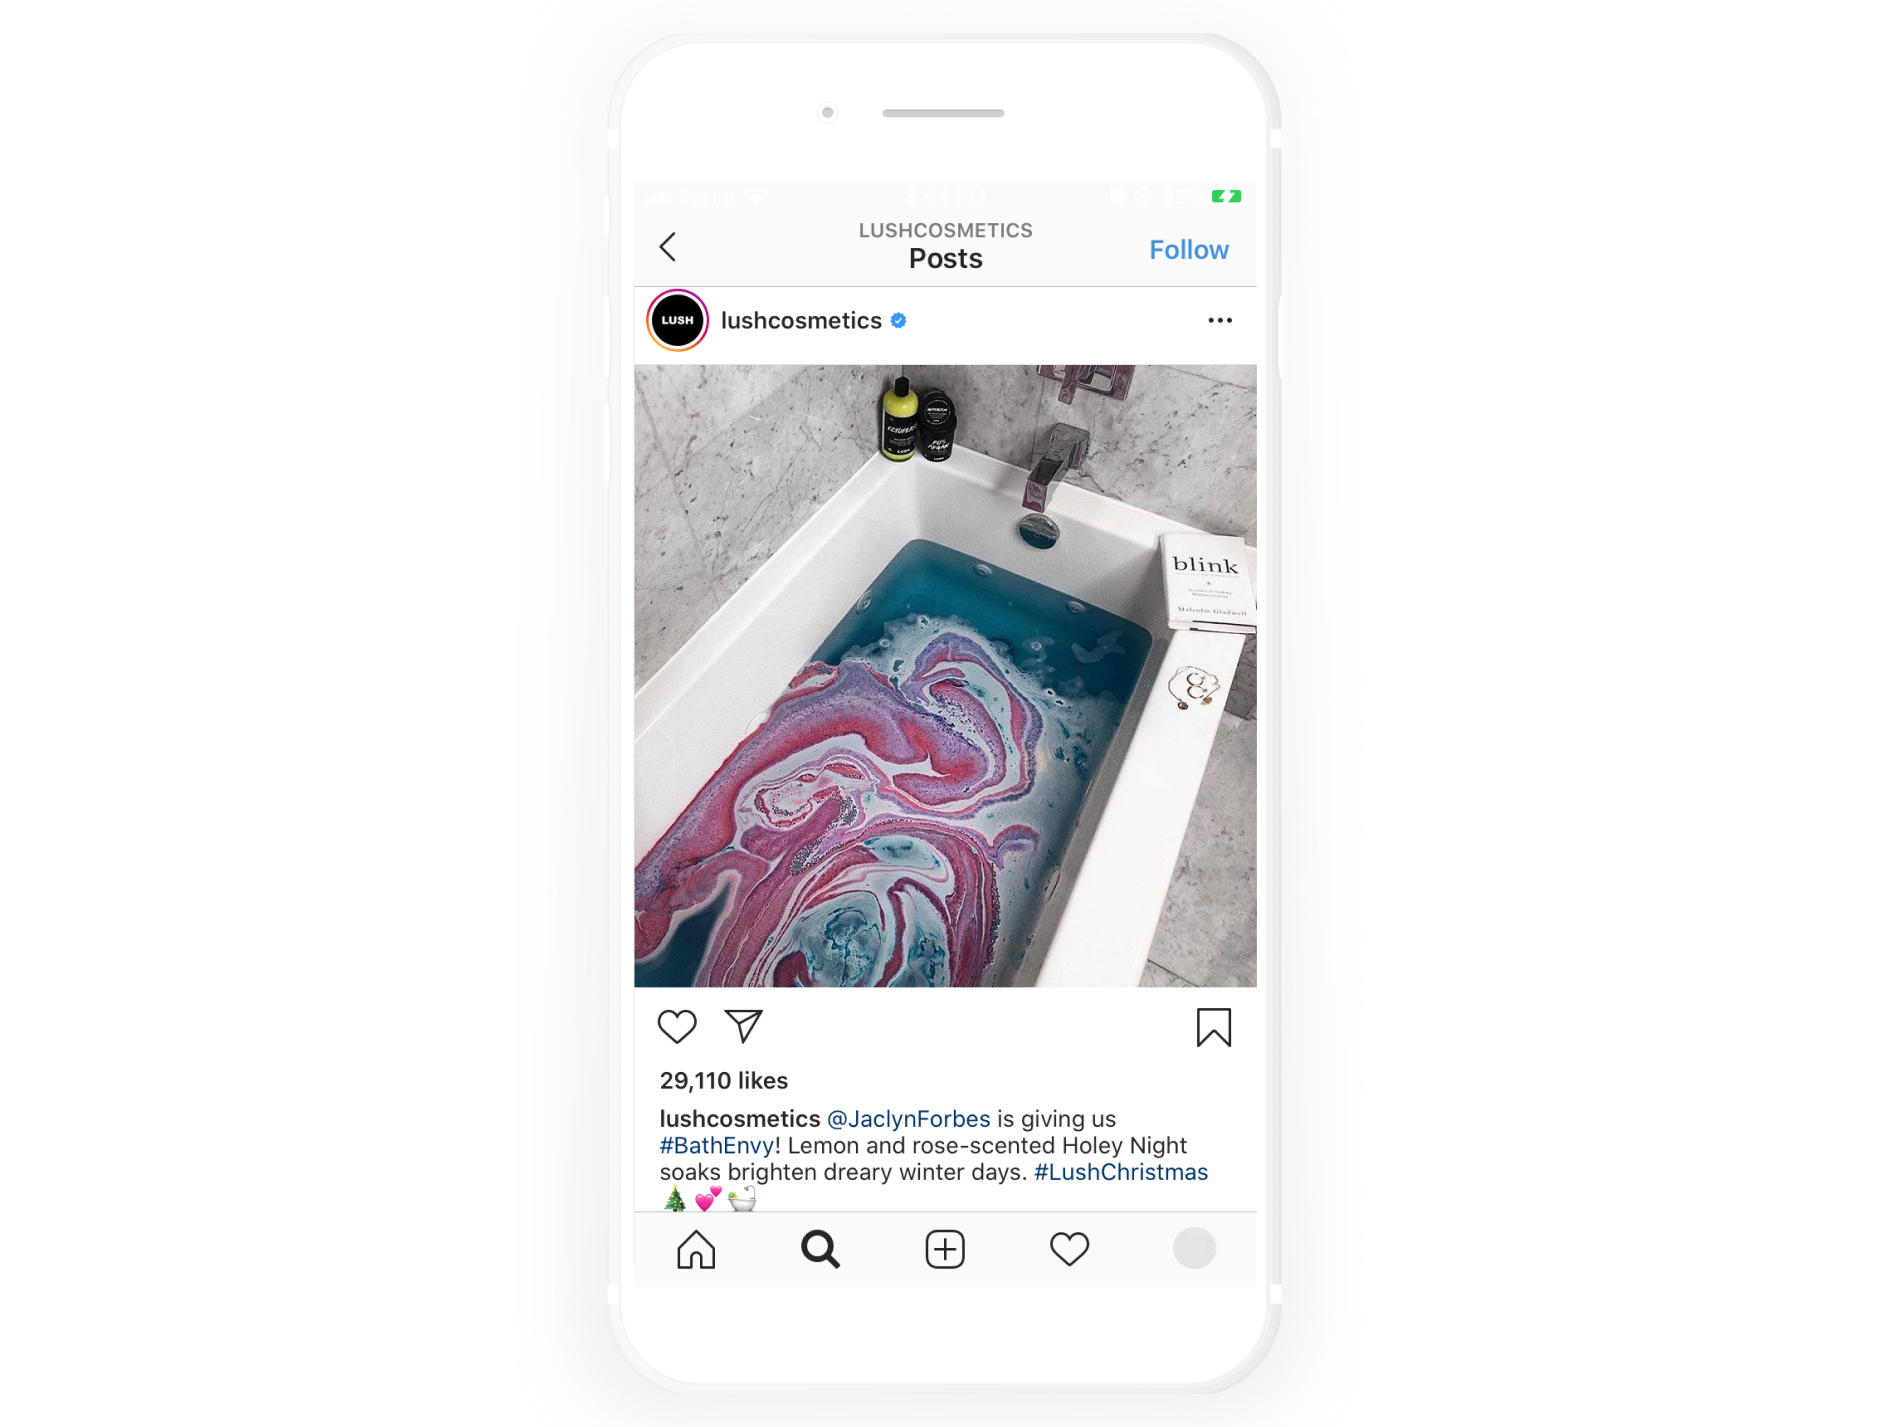 Lush shares their User Generated Content